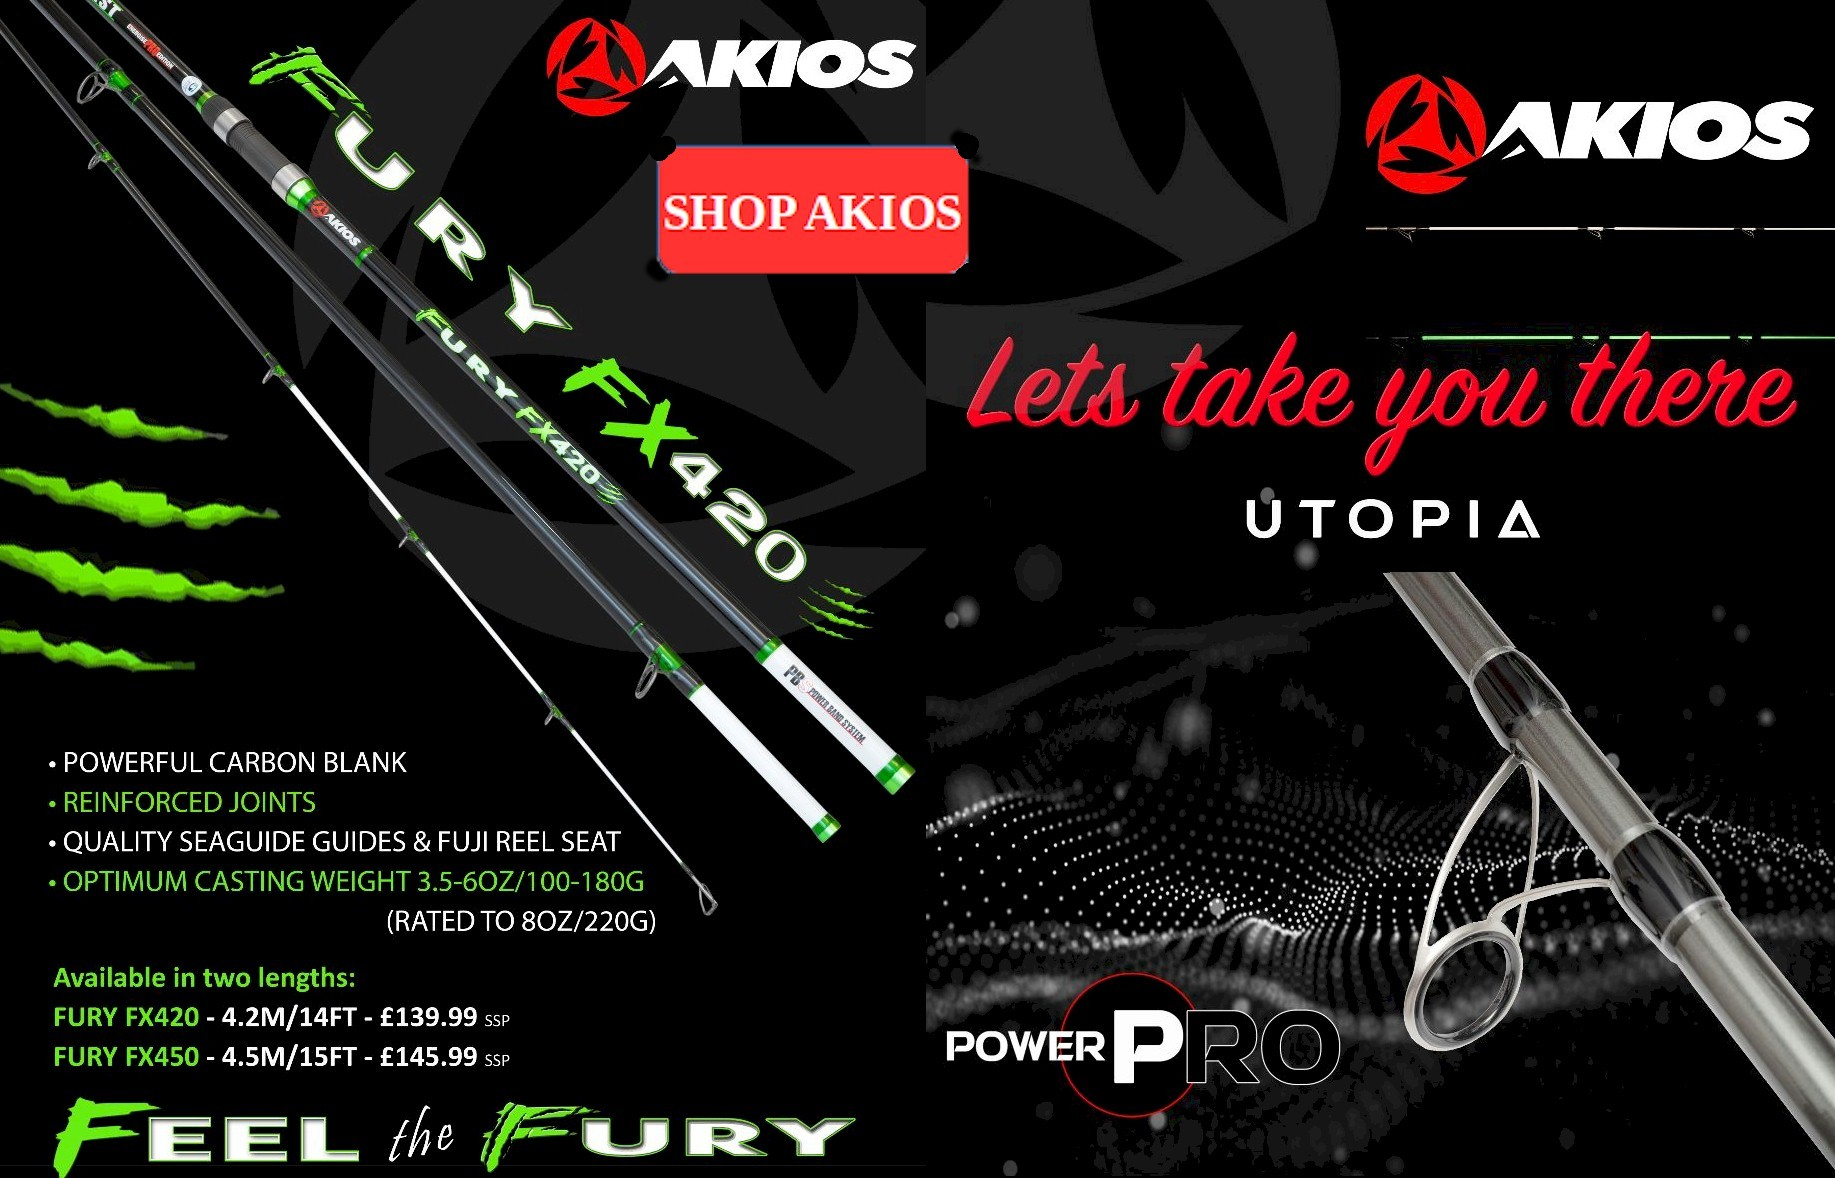 Shop Akios home